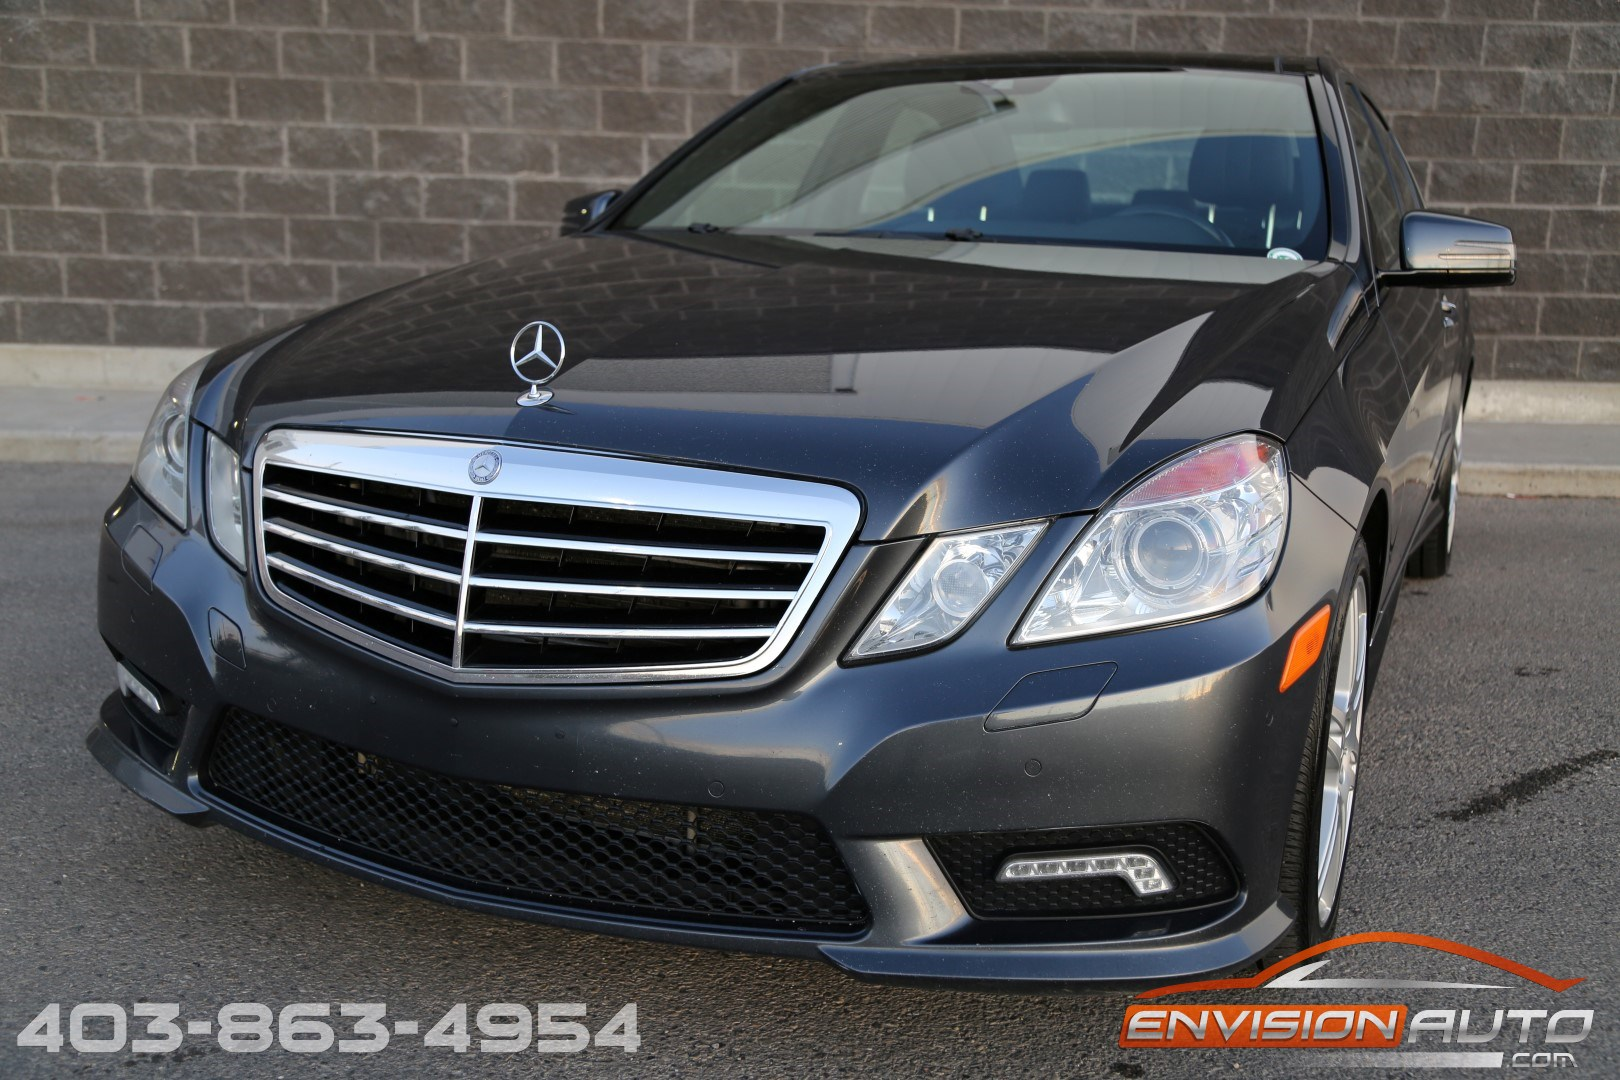 2010 mercedes benz e550 4matic spotless history envision for Mercedes benz car history